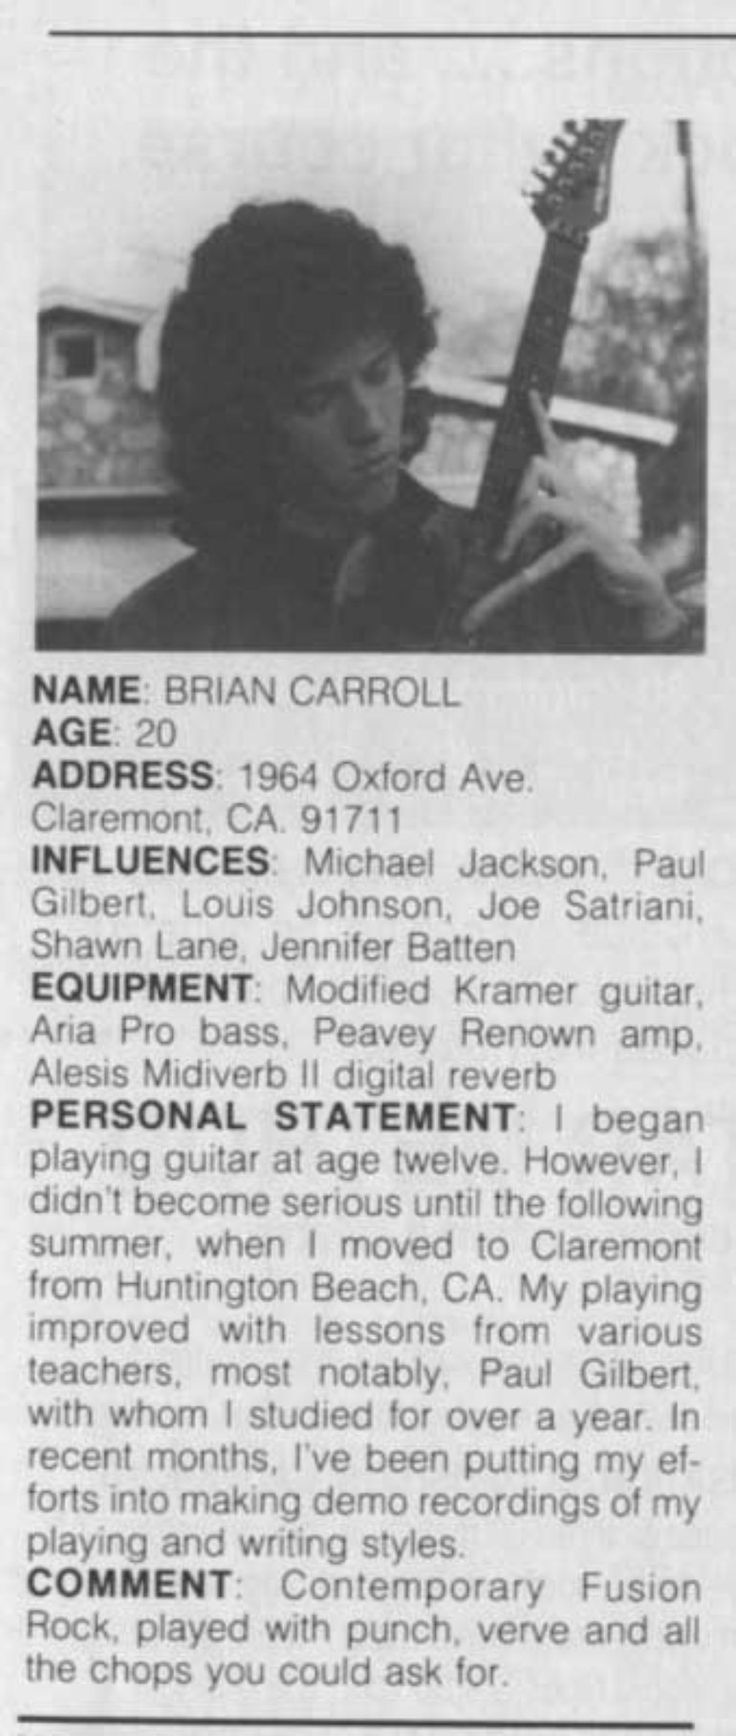 A young Brian Carroll pre Buckethead. I love his earnest background description and his slightly cocky confidence in his playing ability.